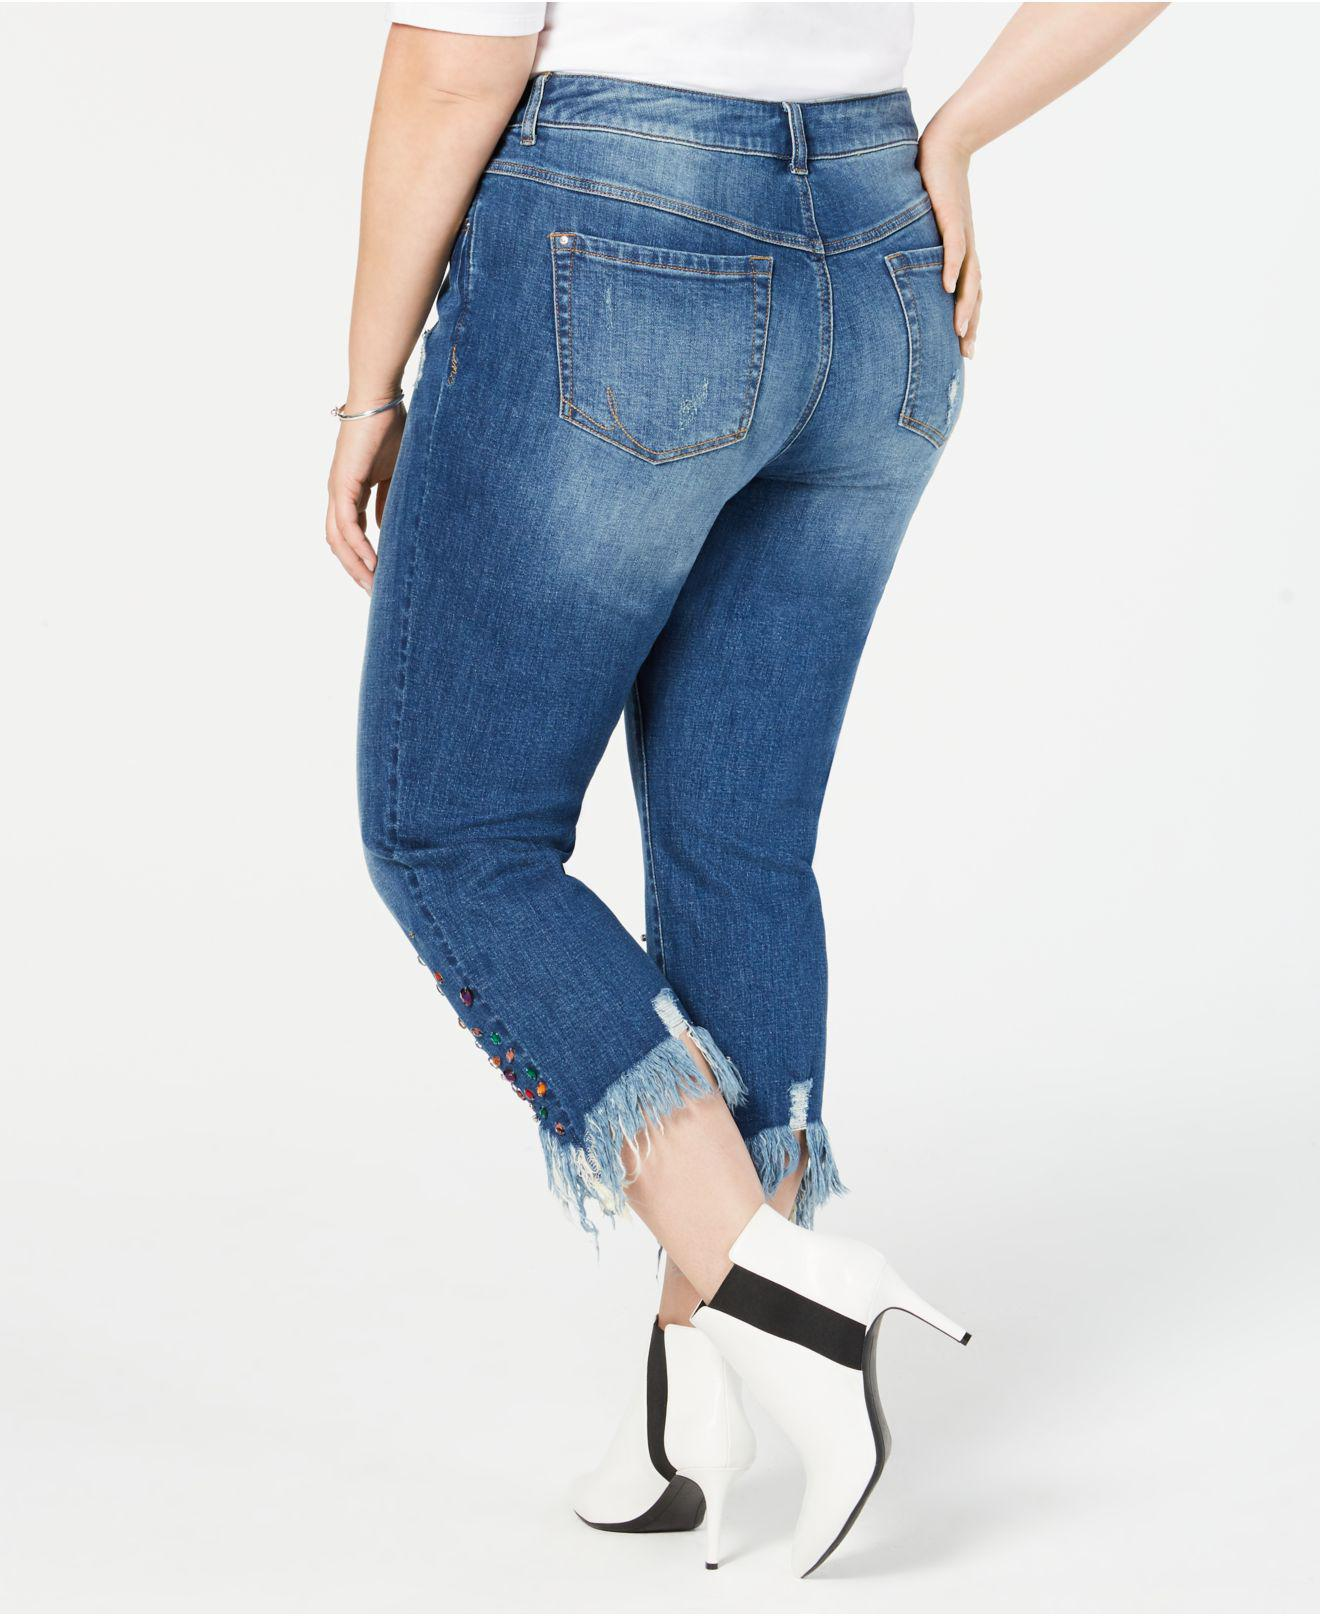 dbc6cd326bc28 Lyst - Inc International Concepts I.n.c. Plus Size Studded Ankle-length  Jeans